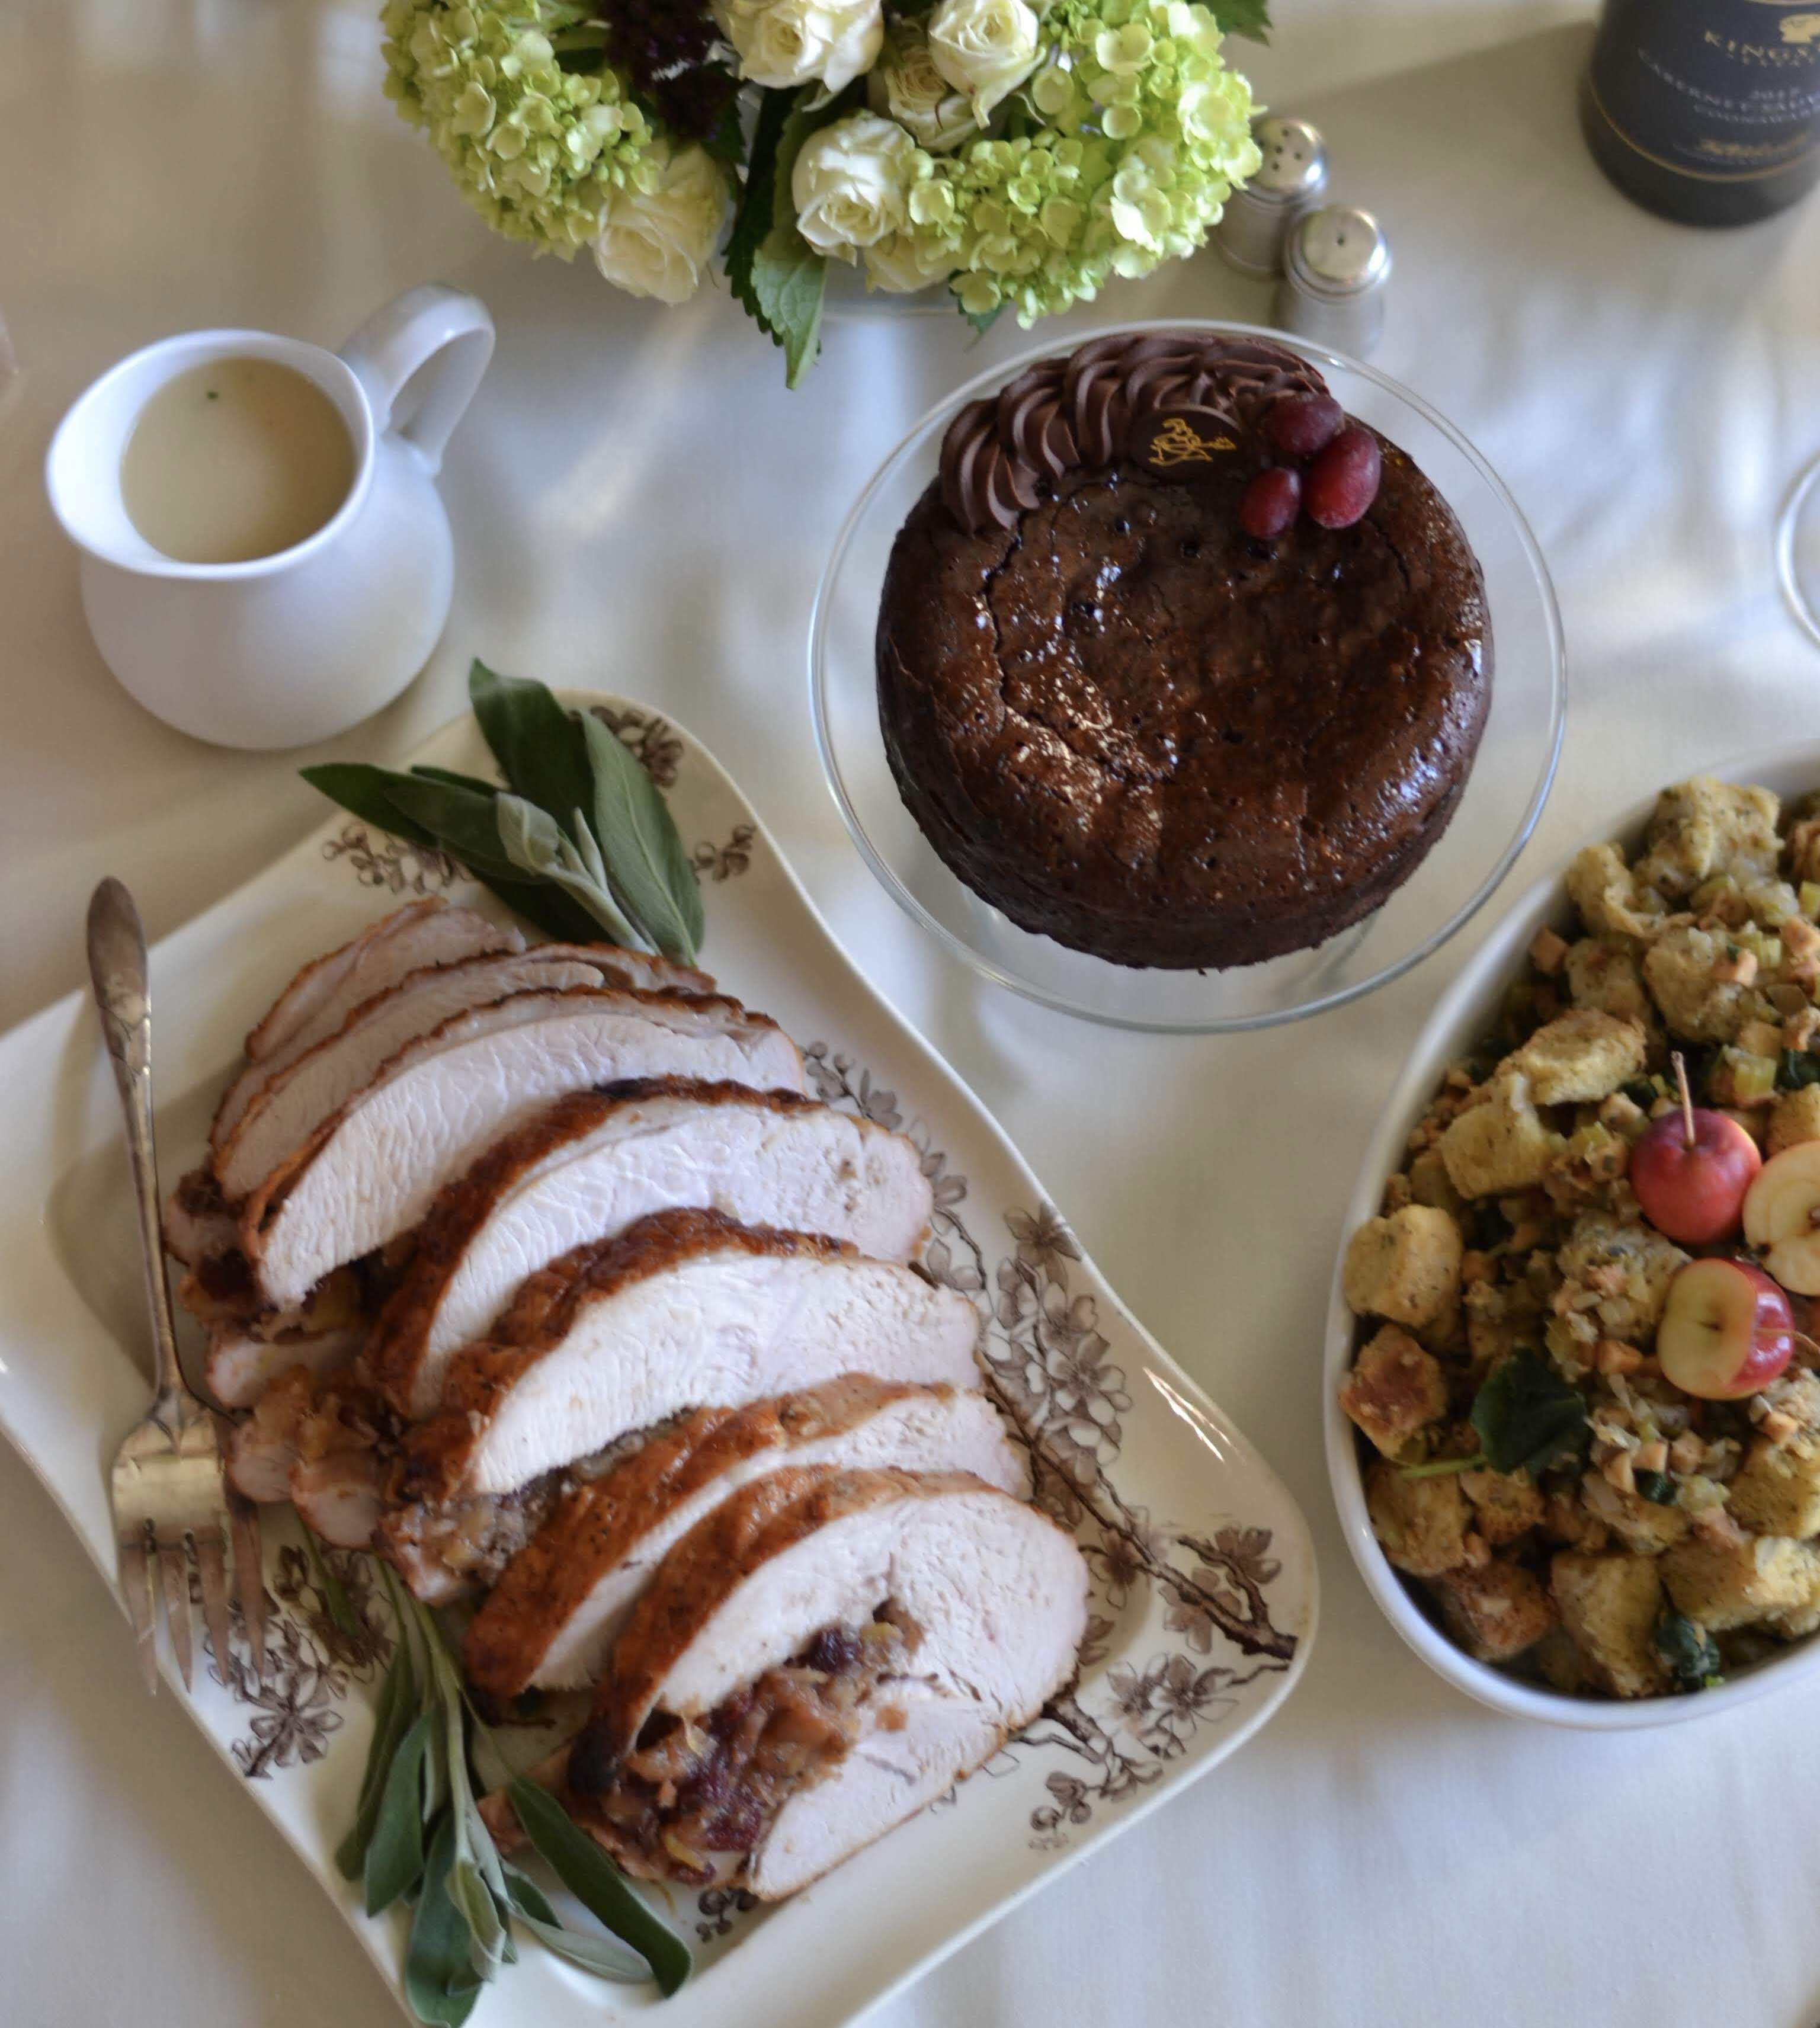 Roasted Turkey Breast stuffed with Dried Fruit Chutney